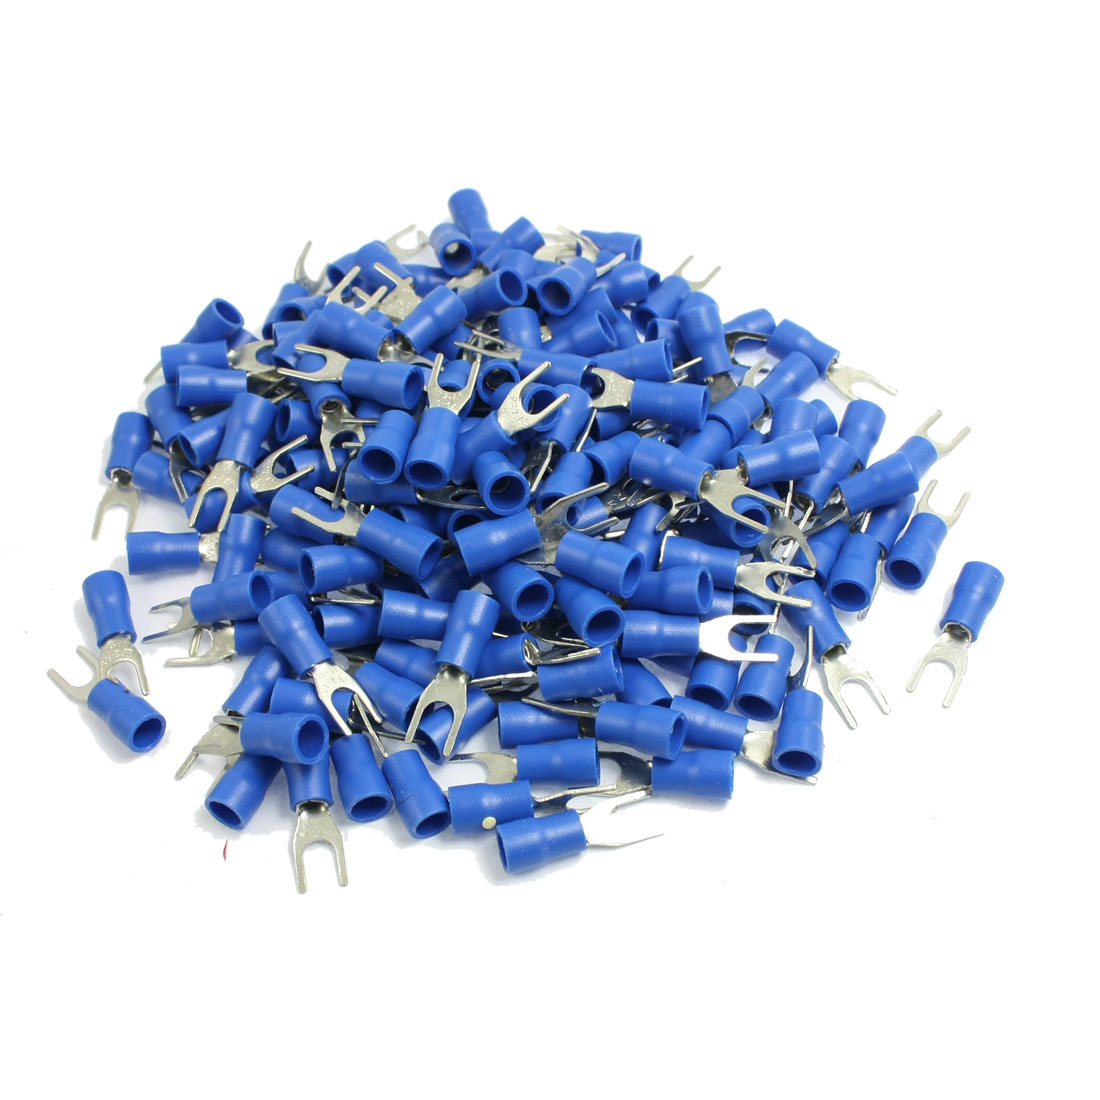 200 Pcs AWG 16-14 Blue Sleeve Pre Insulated Fork Terminals Connectors